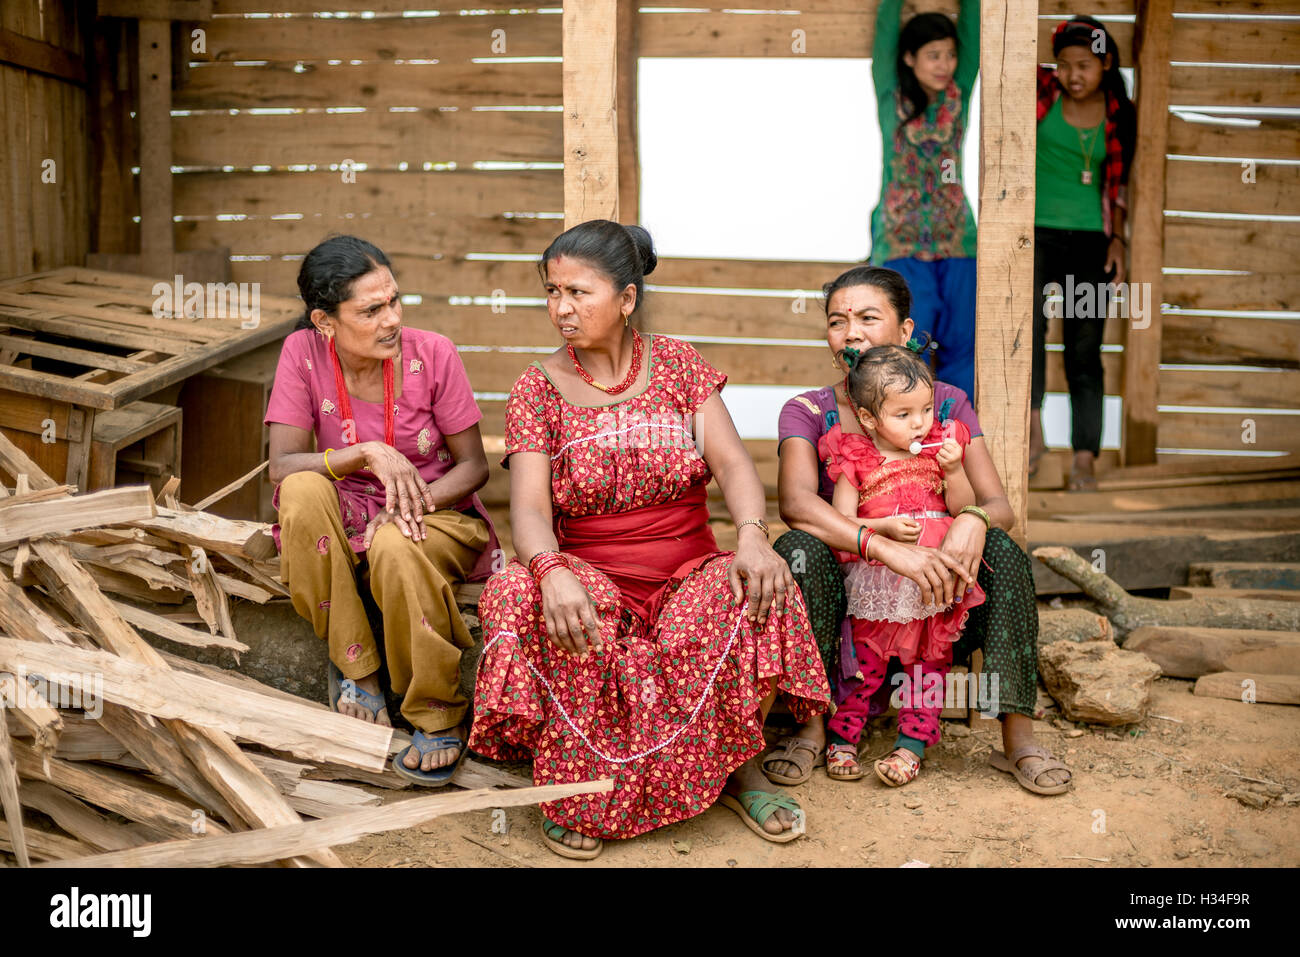 A group of local women attends a community meeting in Kavrepalanchowk District, Nepal. © Reynold Sumayku - Stock Image